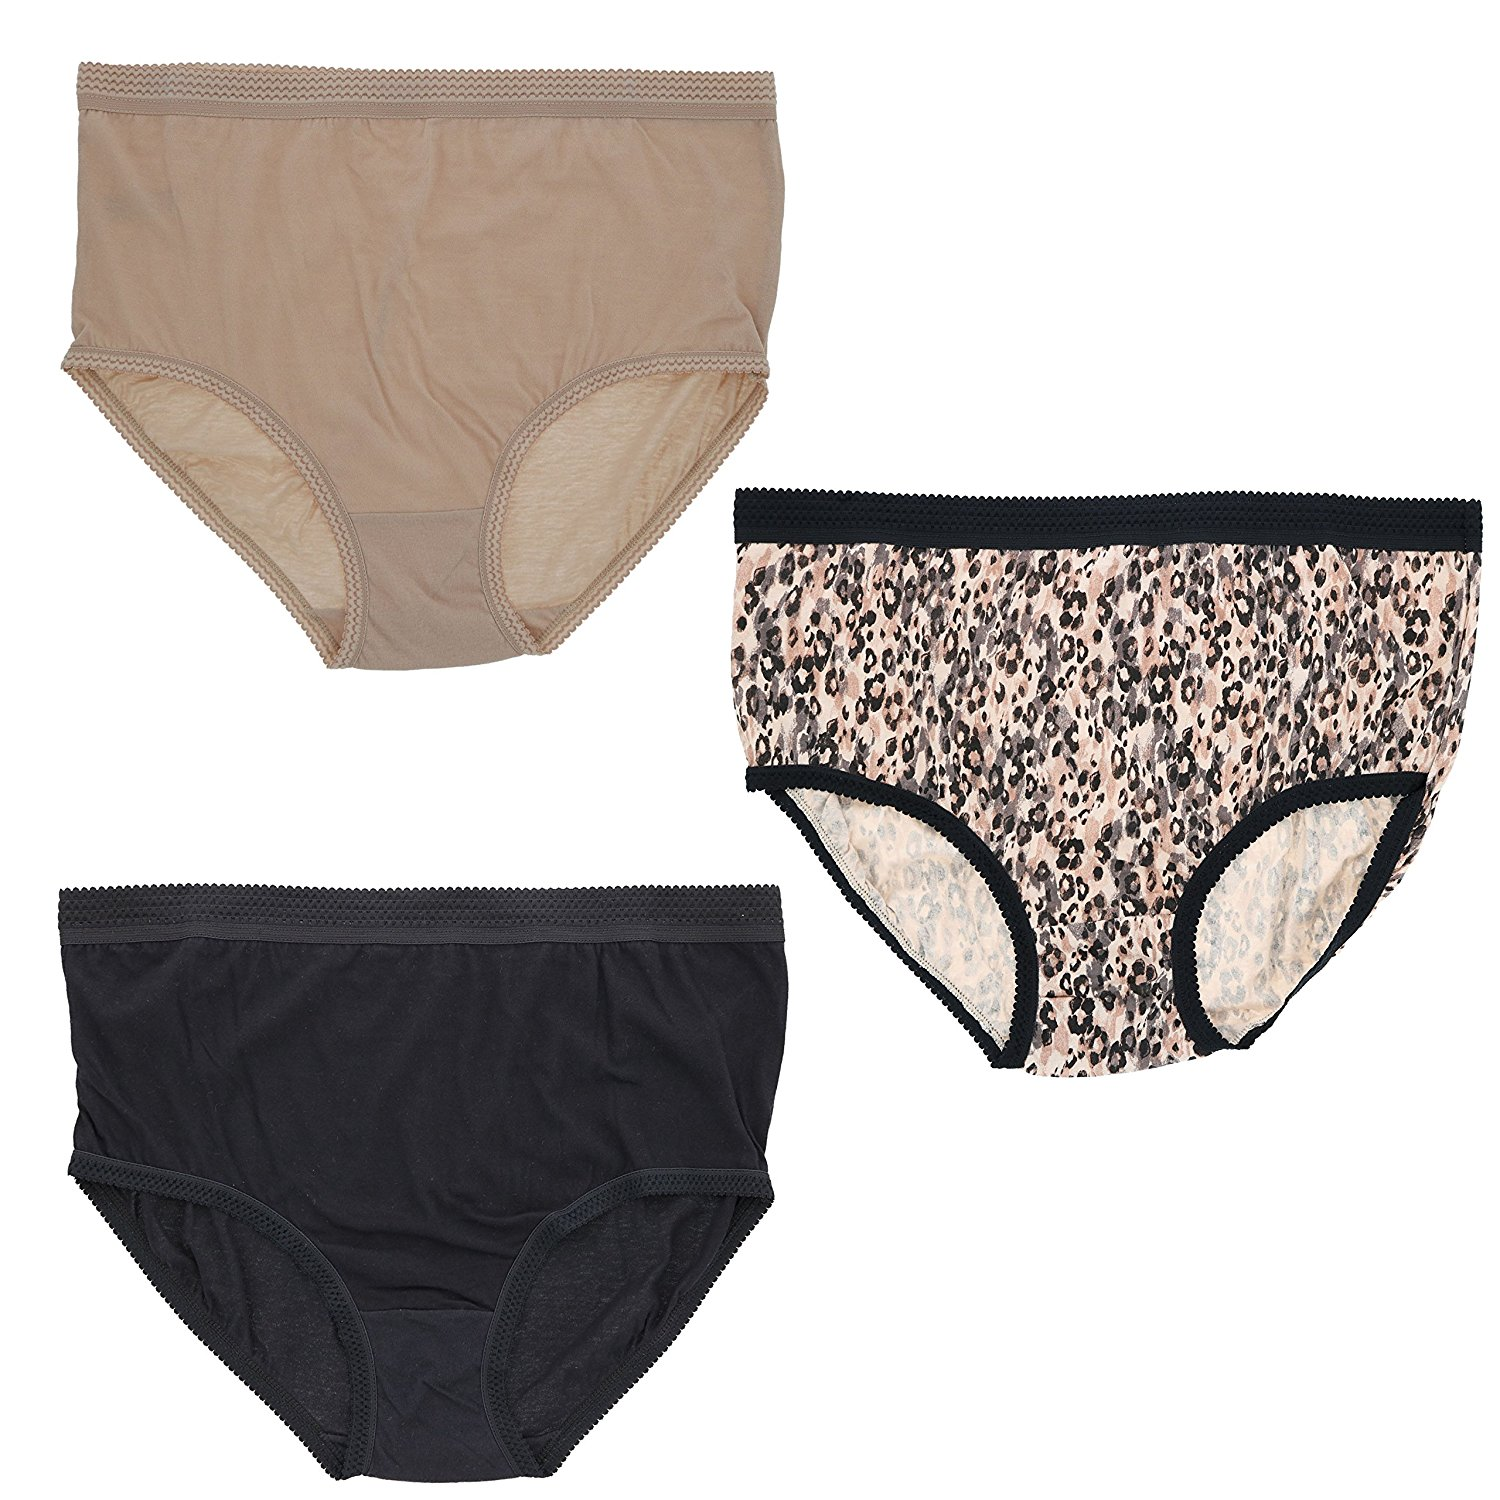 d1beeabb2e Buy delta burke pack plus size seamless hipster panties with lace jpg  1500x1500 Plus size swimwear